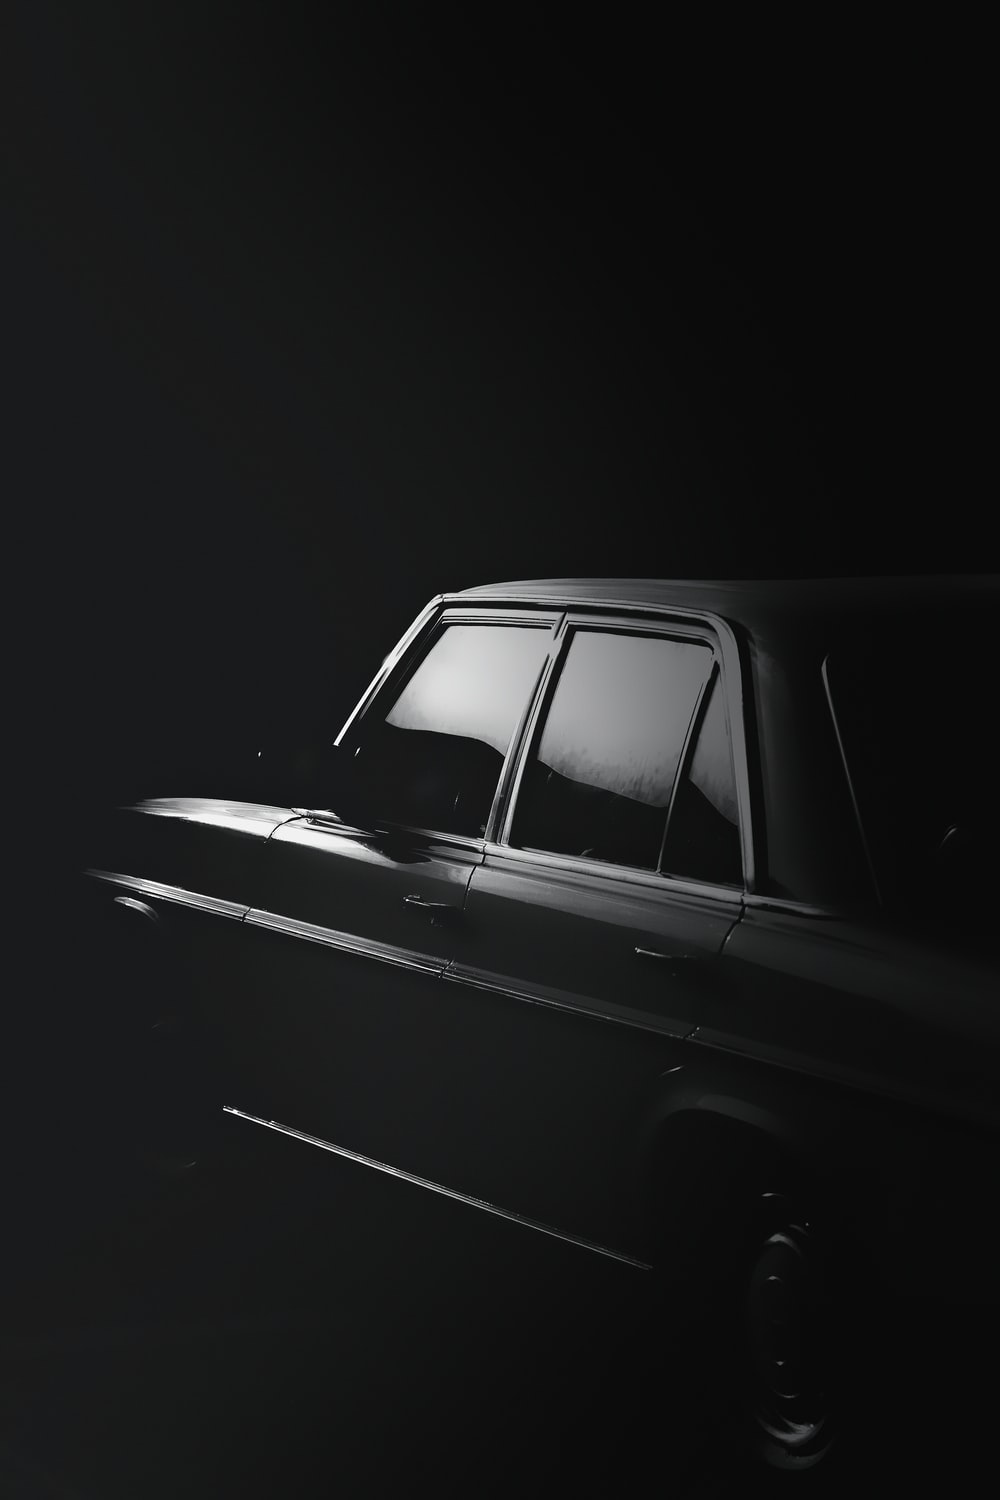 grayscale photo of black sedan